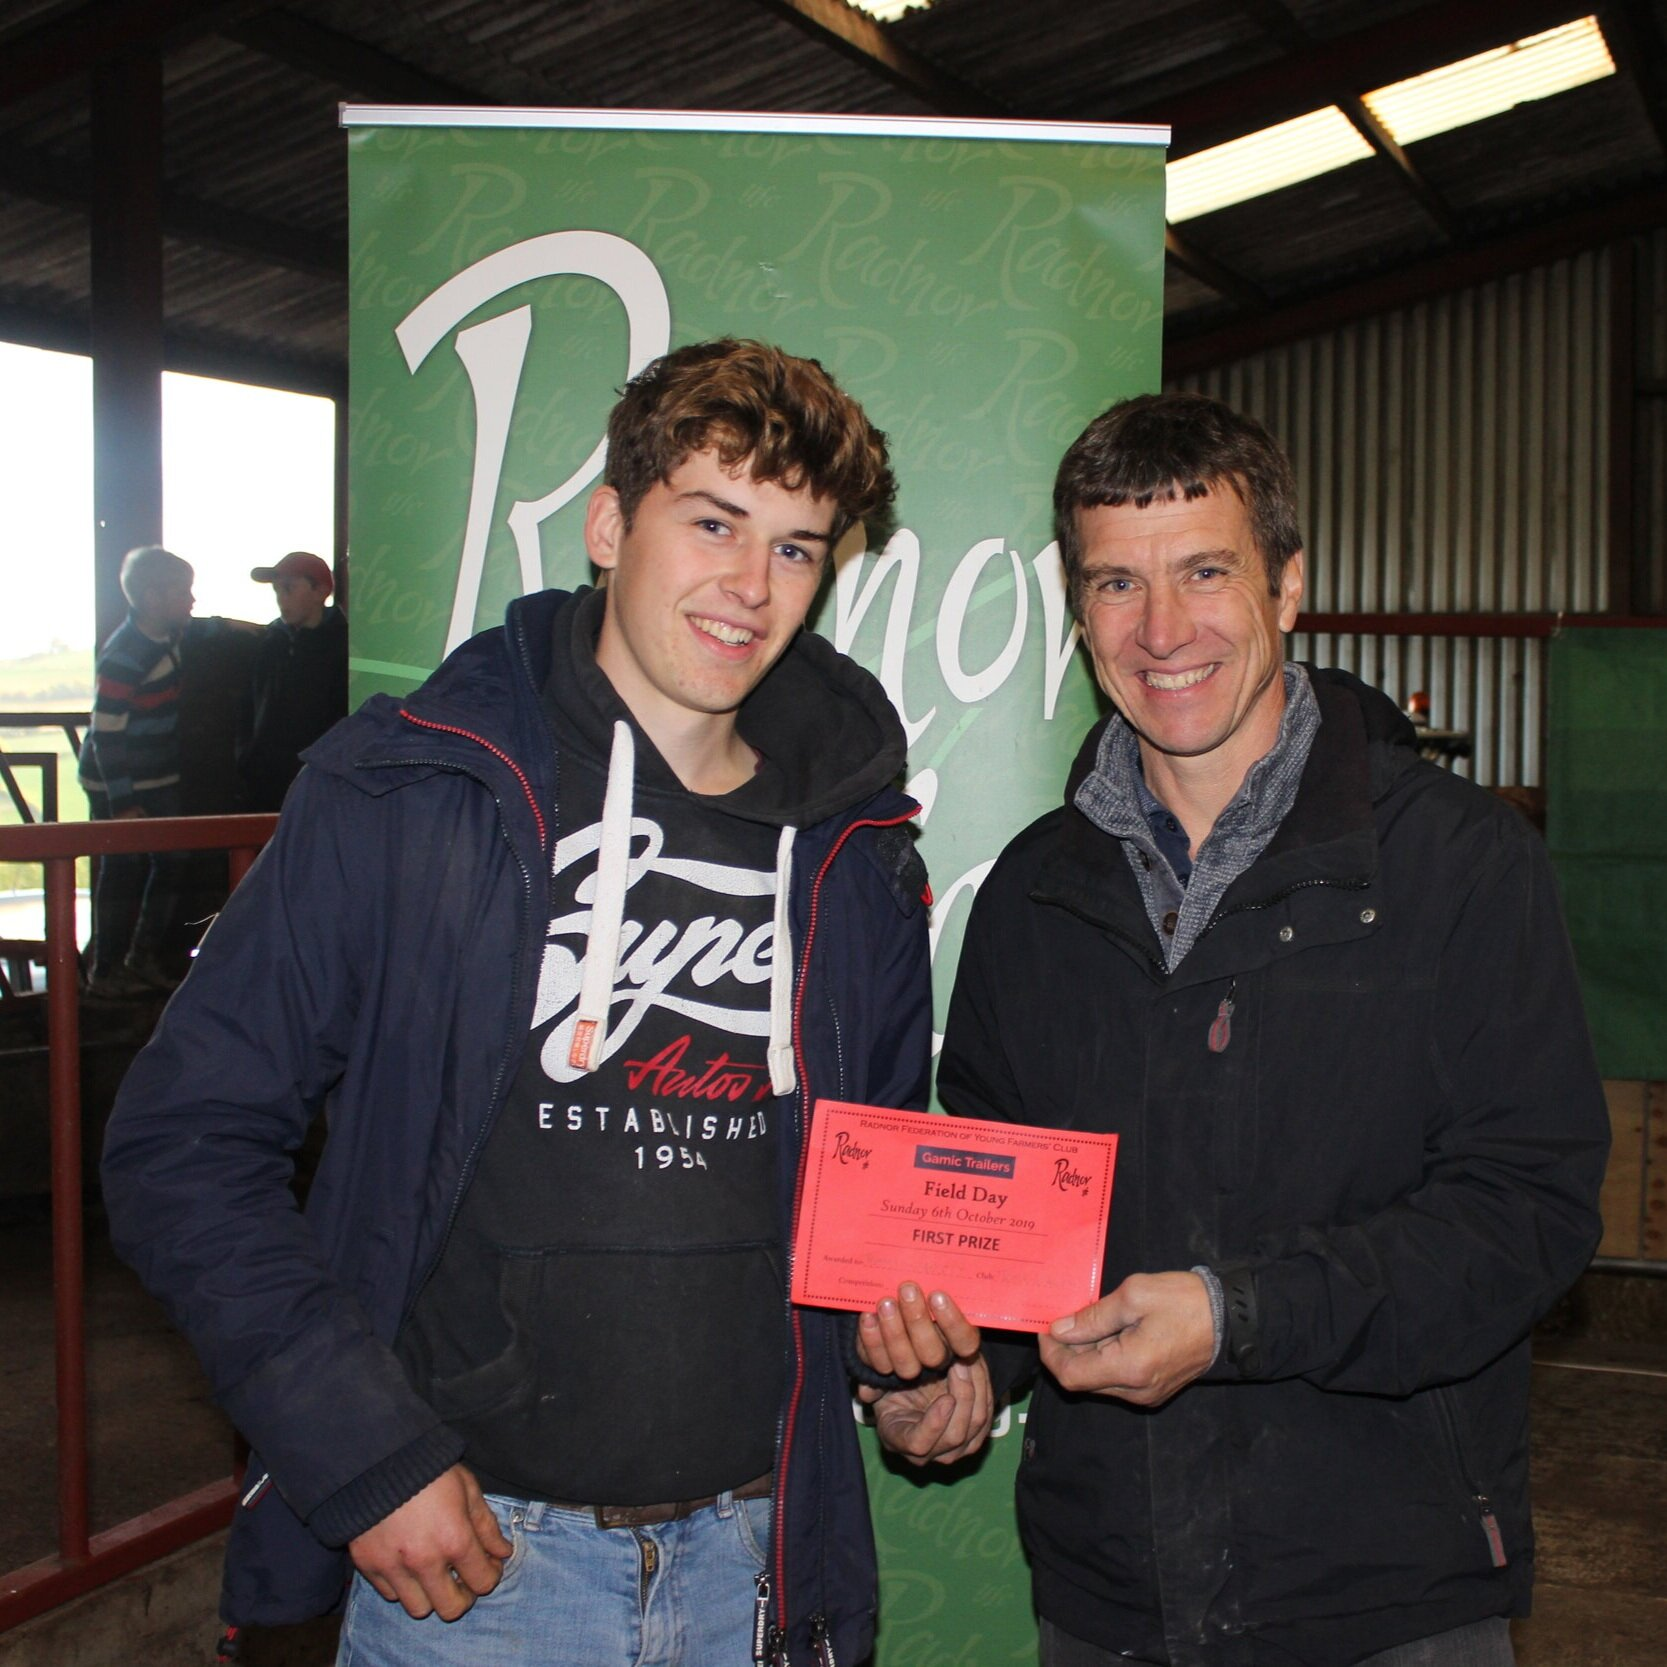 Thomas Swancott, Teme Valley YFC - 1st place in the Lamb Trimming with Mark Watson